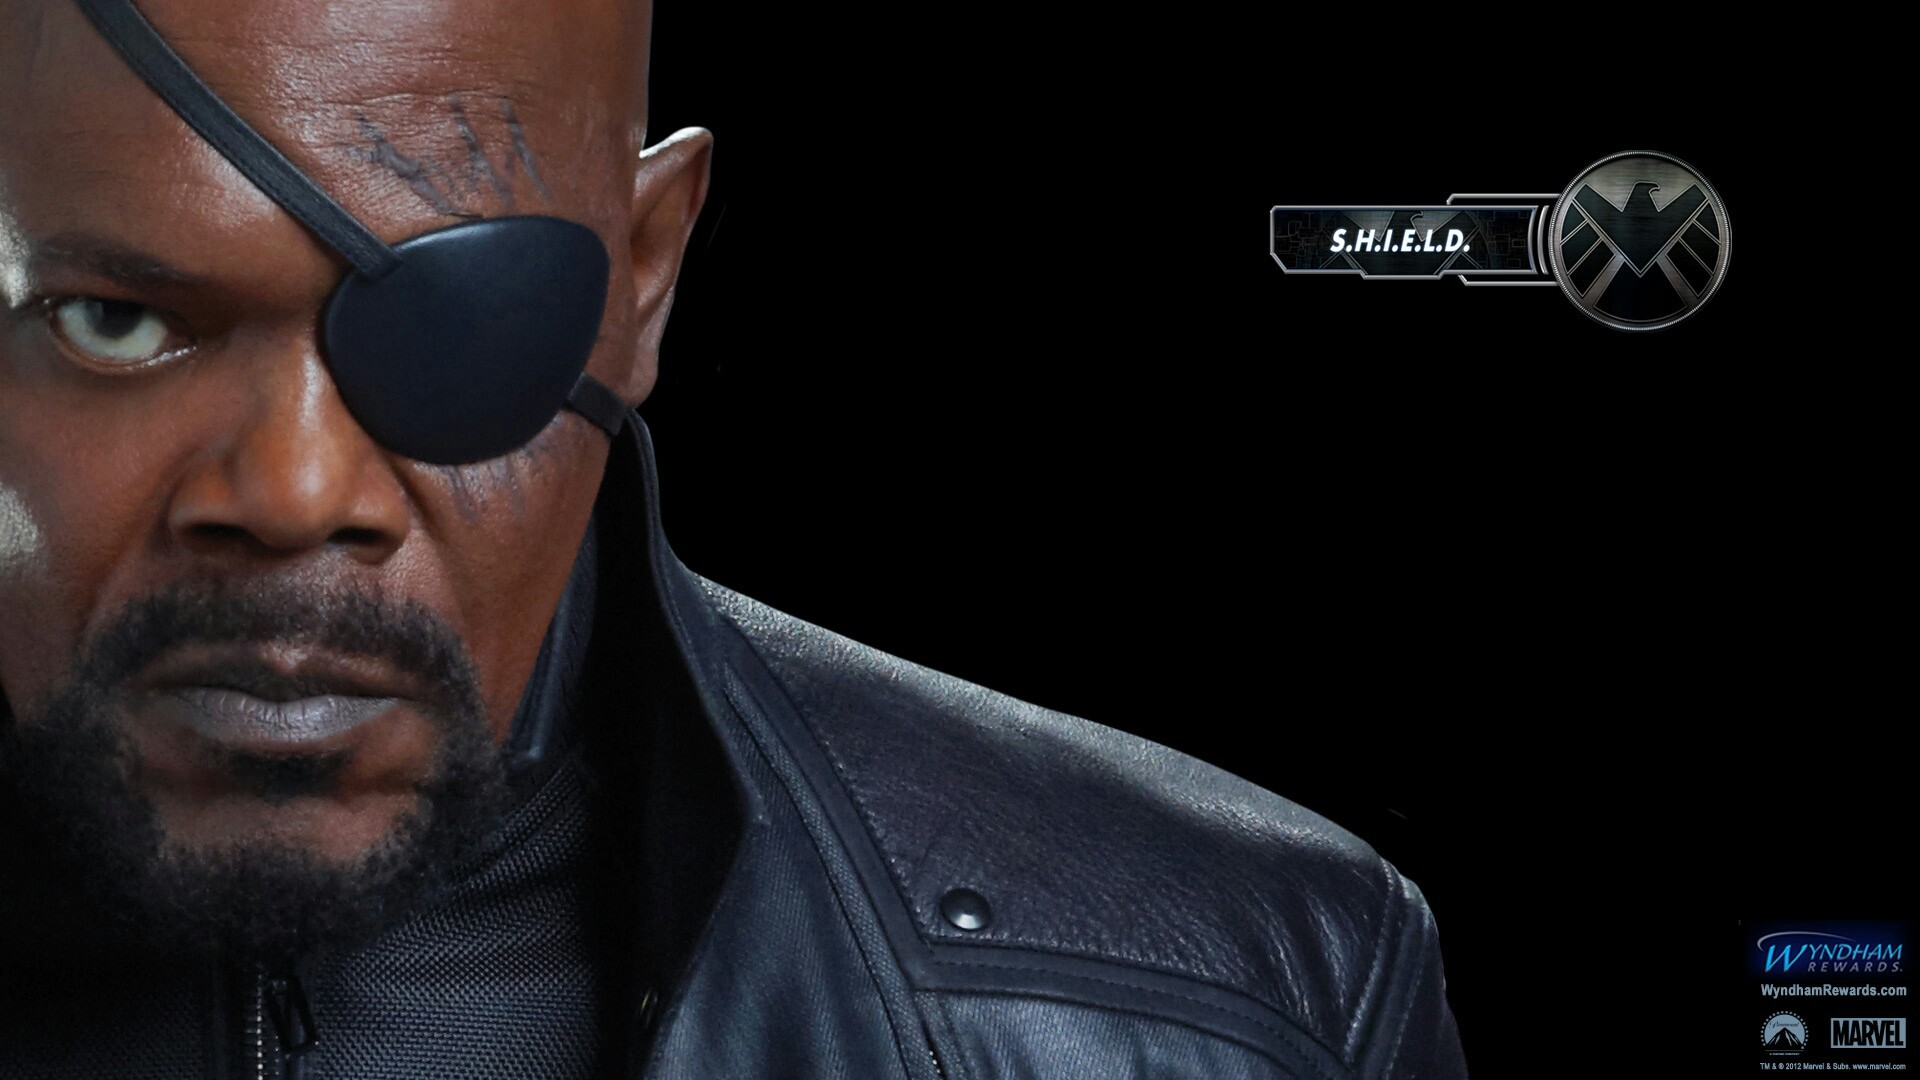 1920x1080 The Avengers Wallpaper - Samuel L. Jackson as Nick Fury